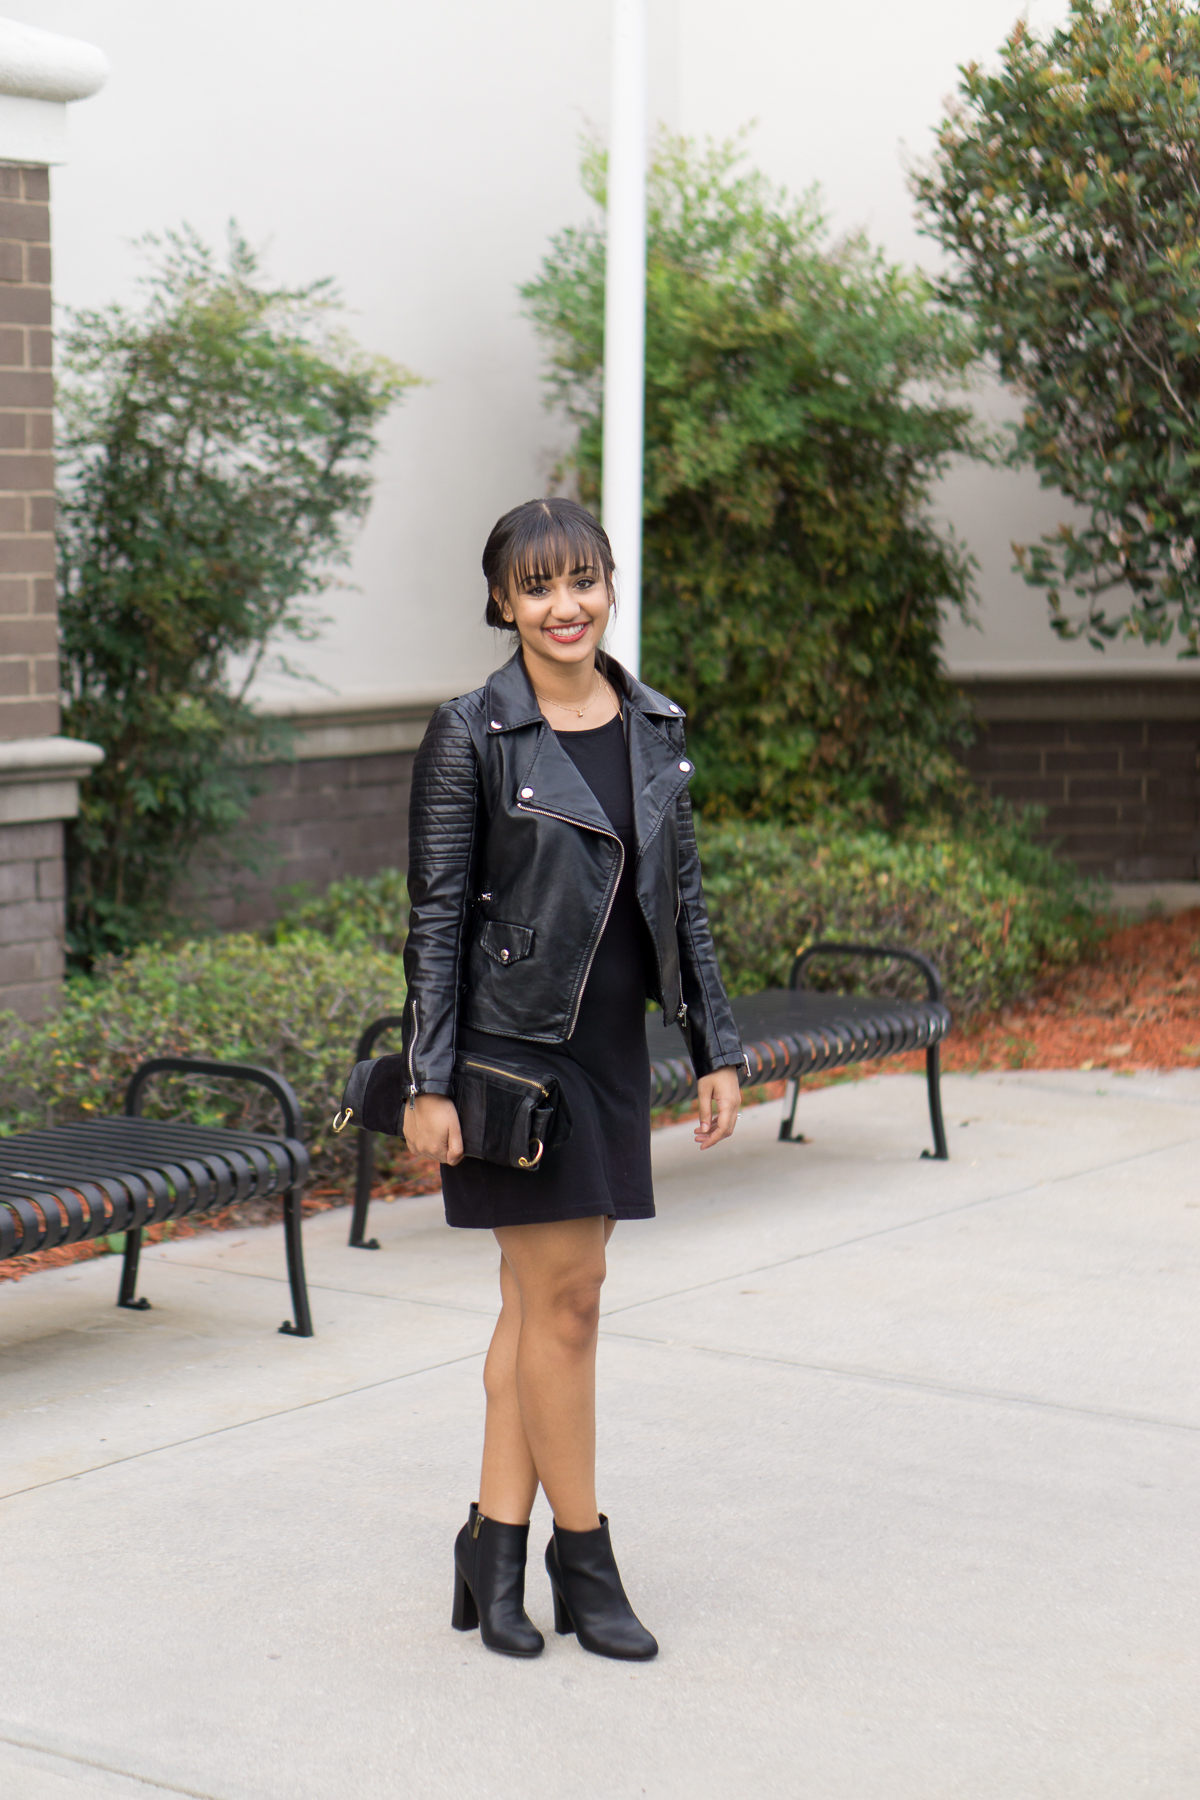 Leather Jackets for Fall in Florida- Monique McHugh Blog